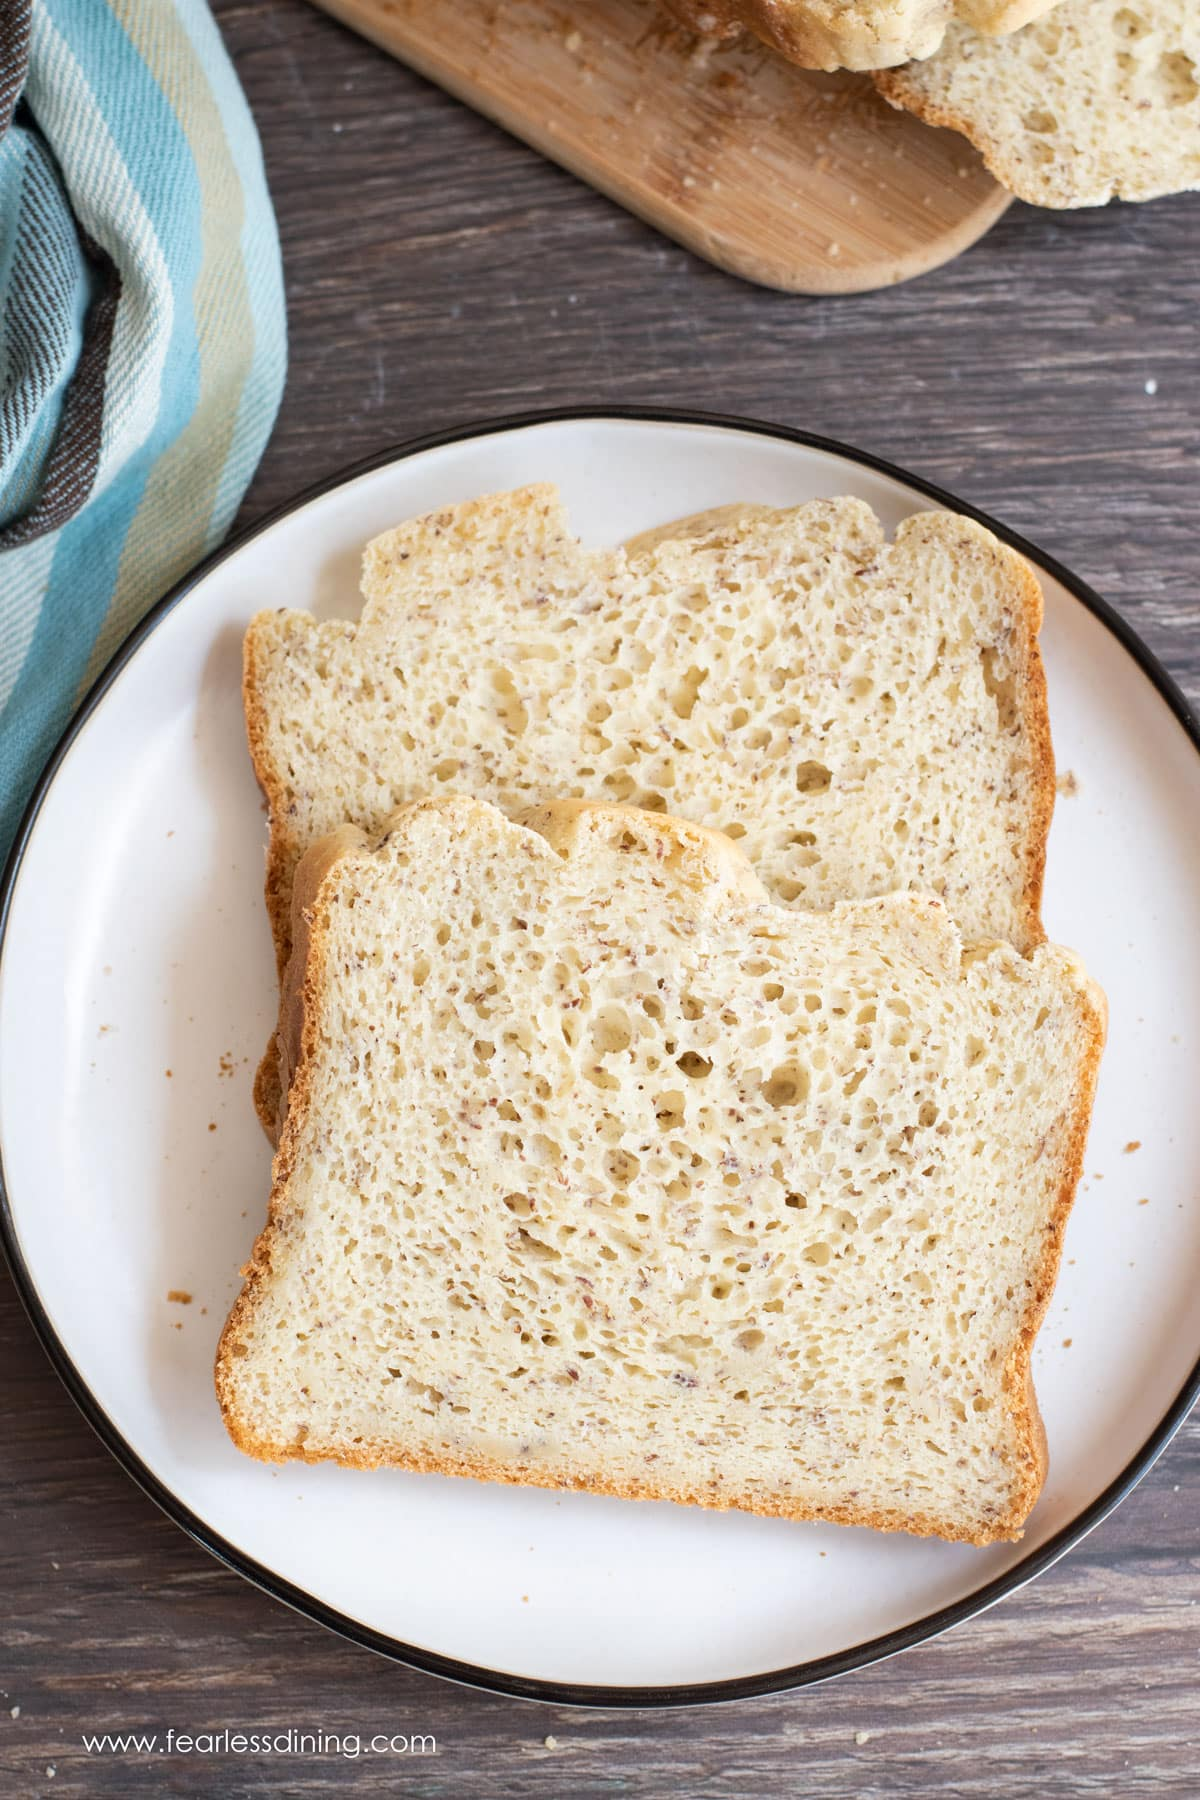 two slices of gluten free bread on a plate